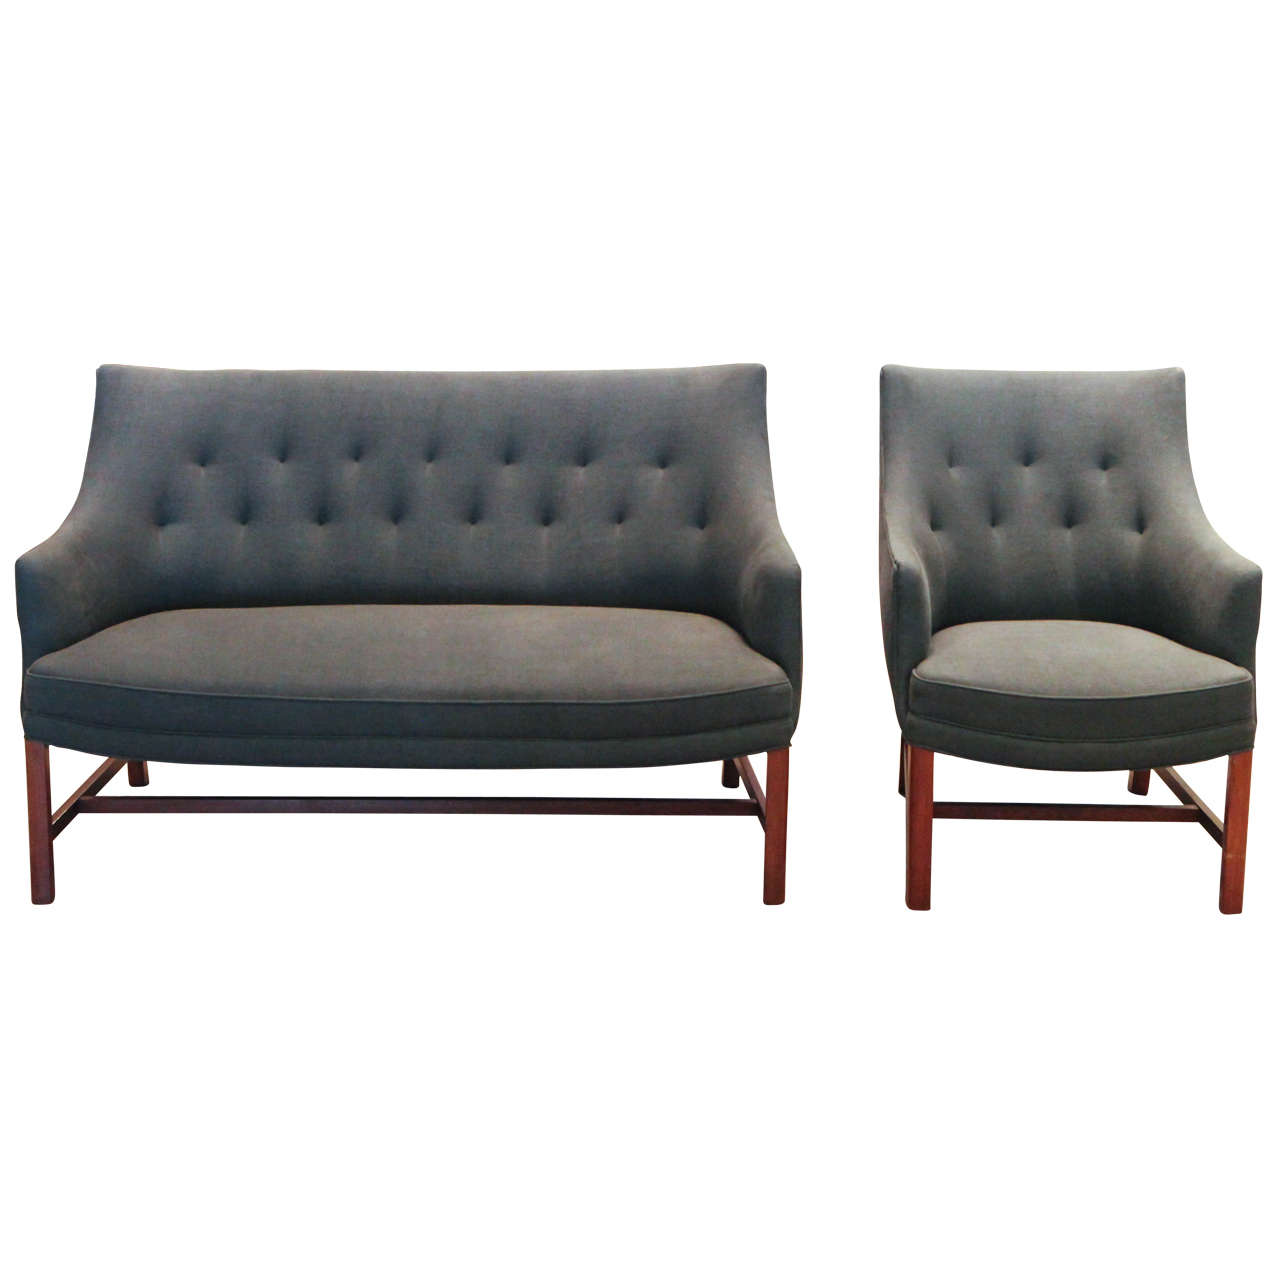 frits henningsen loveseat and chair, denmark, 1940s at 1stdibs